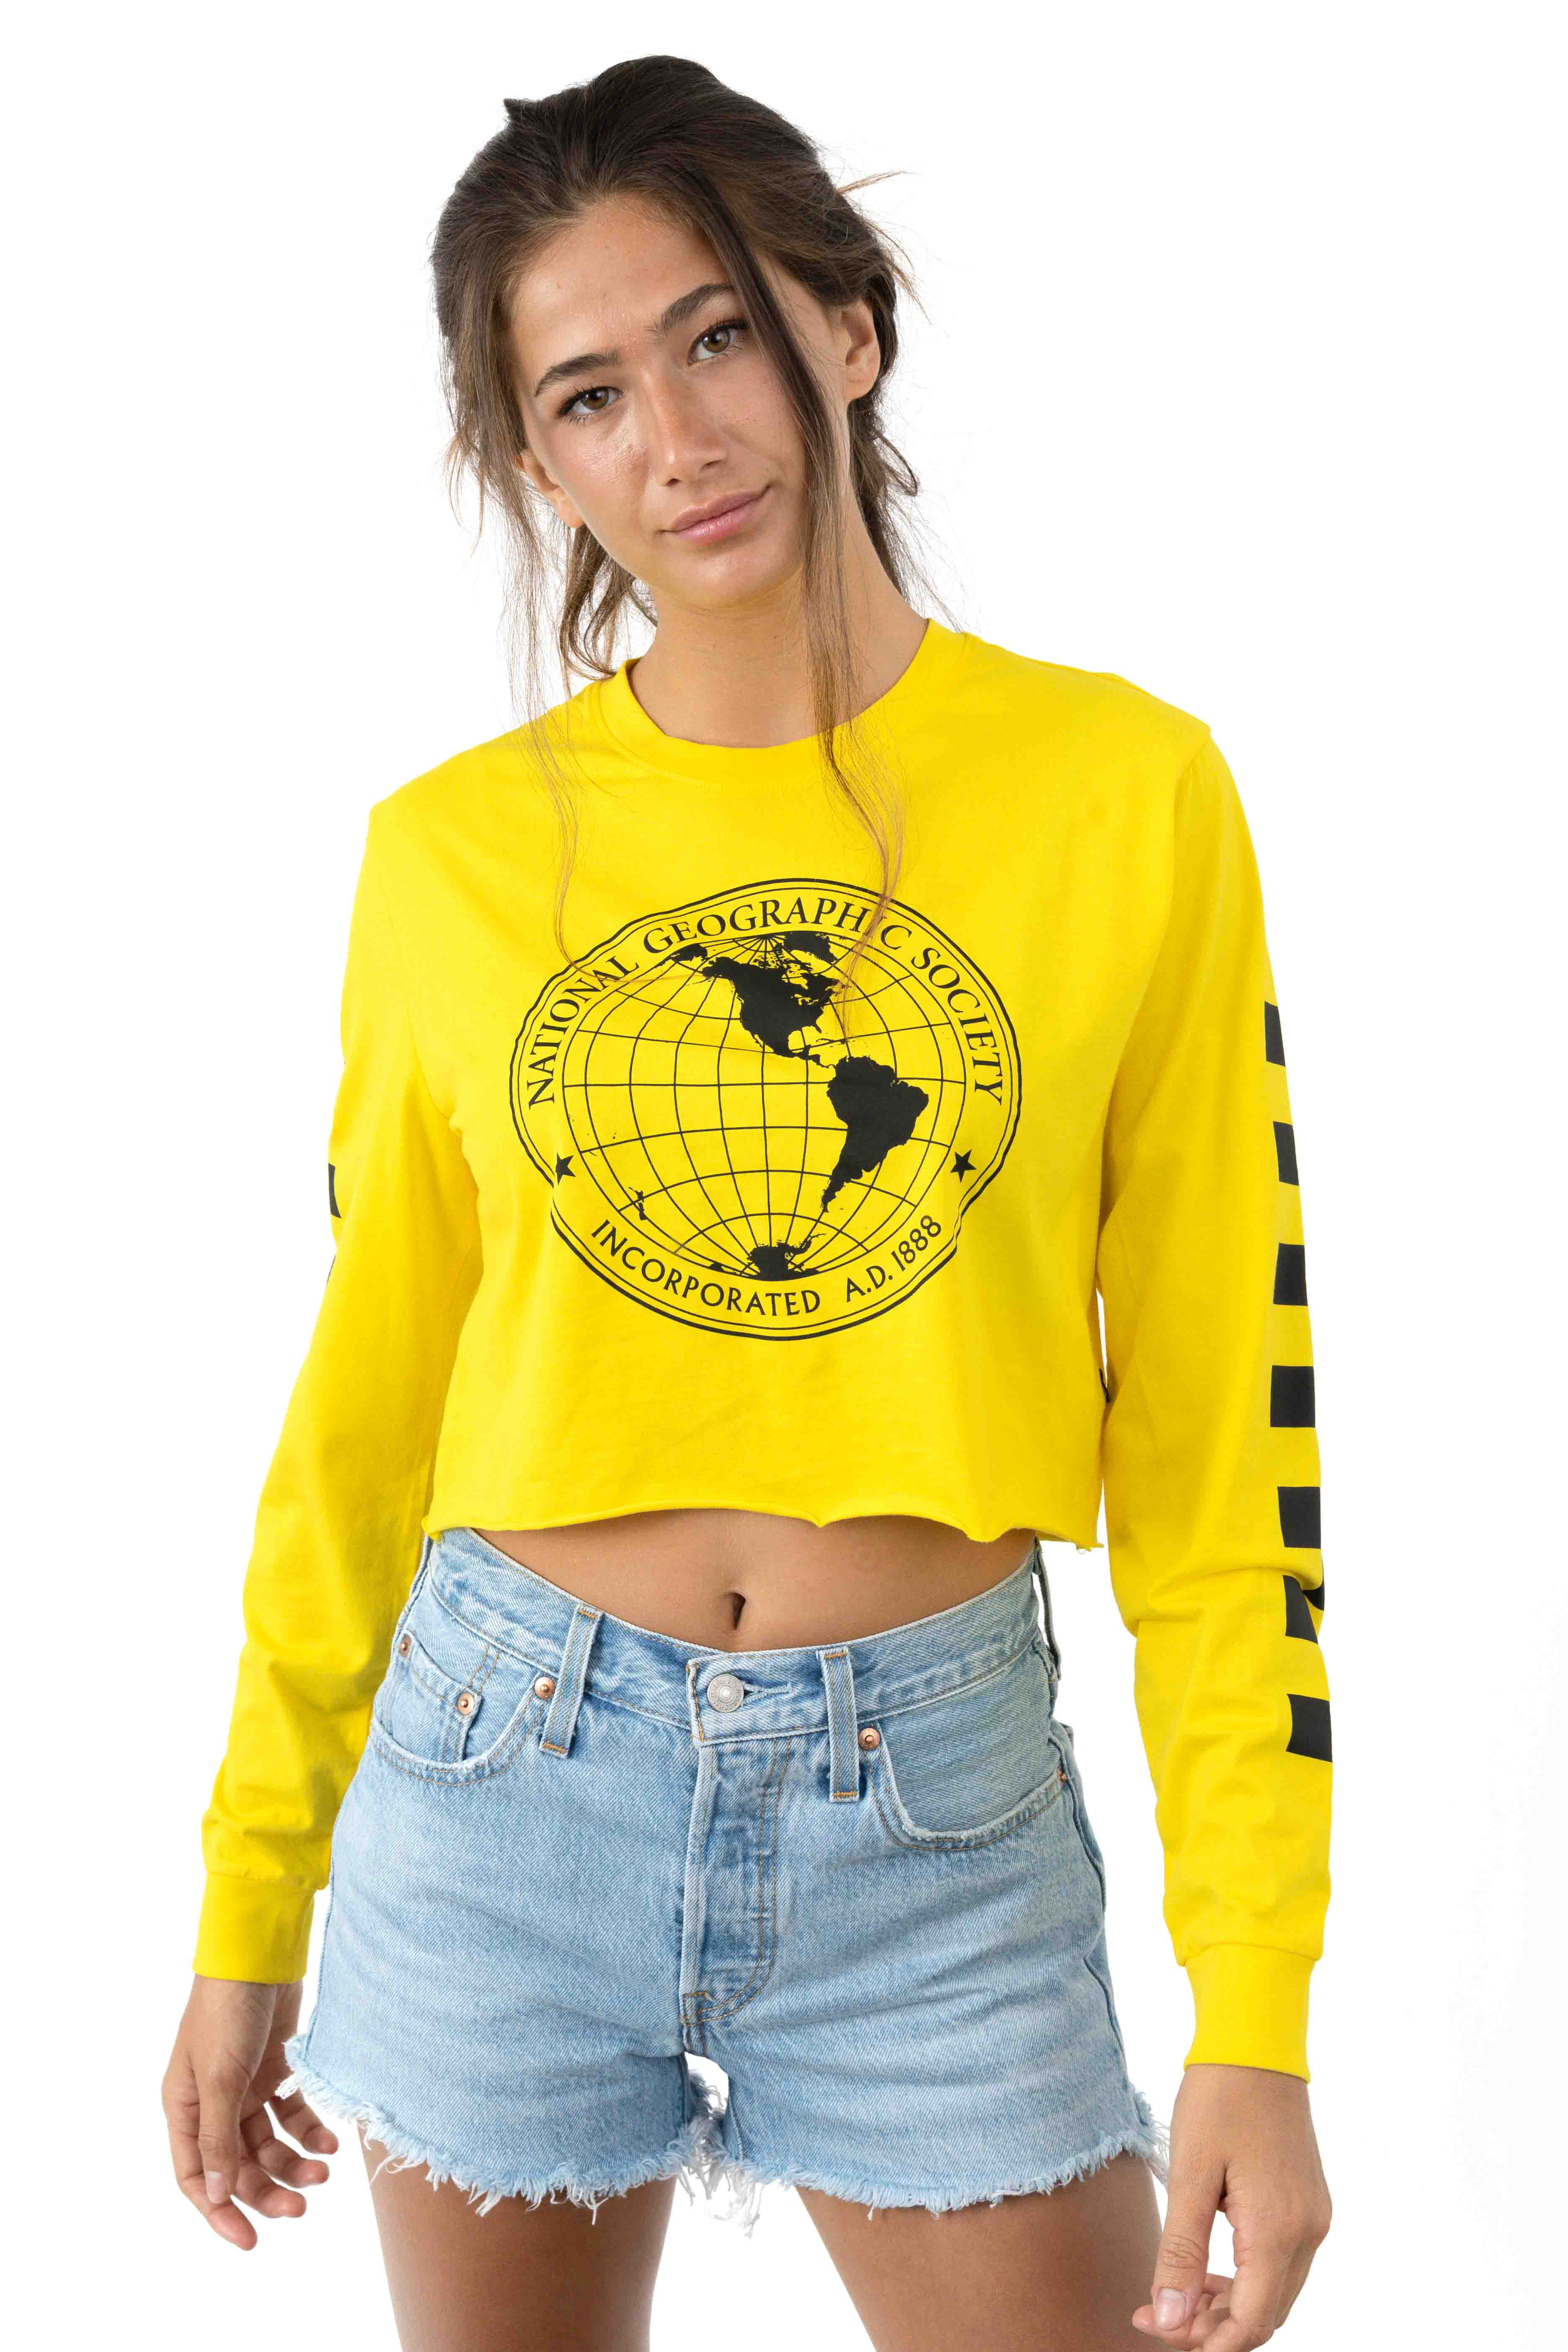 Nat Geo L/S Tee - Yellow